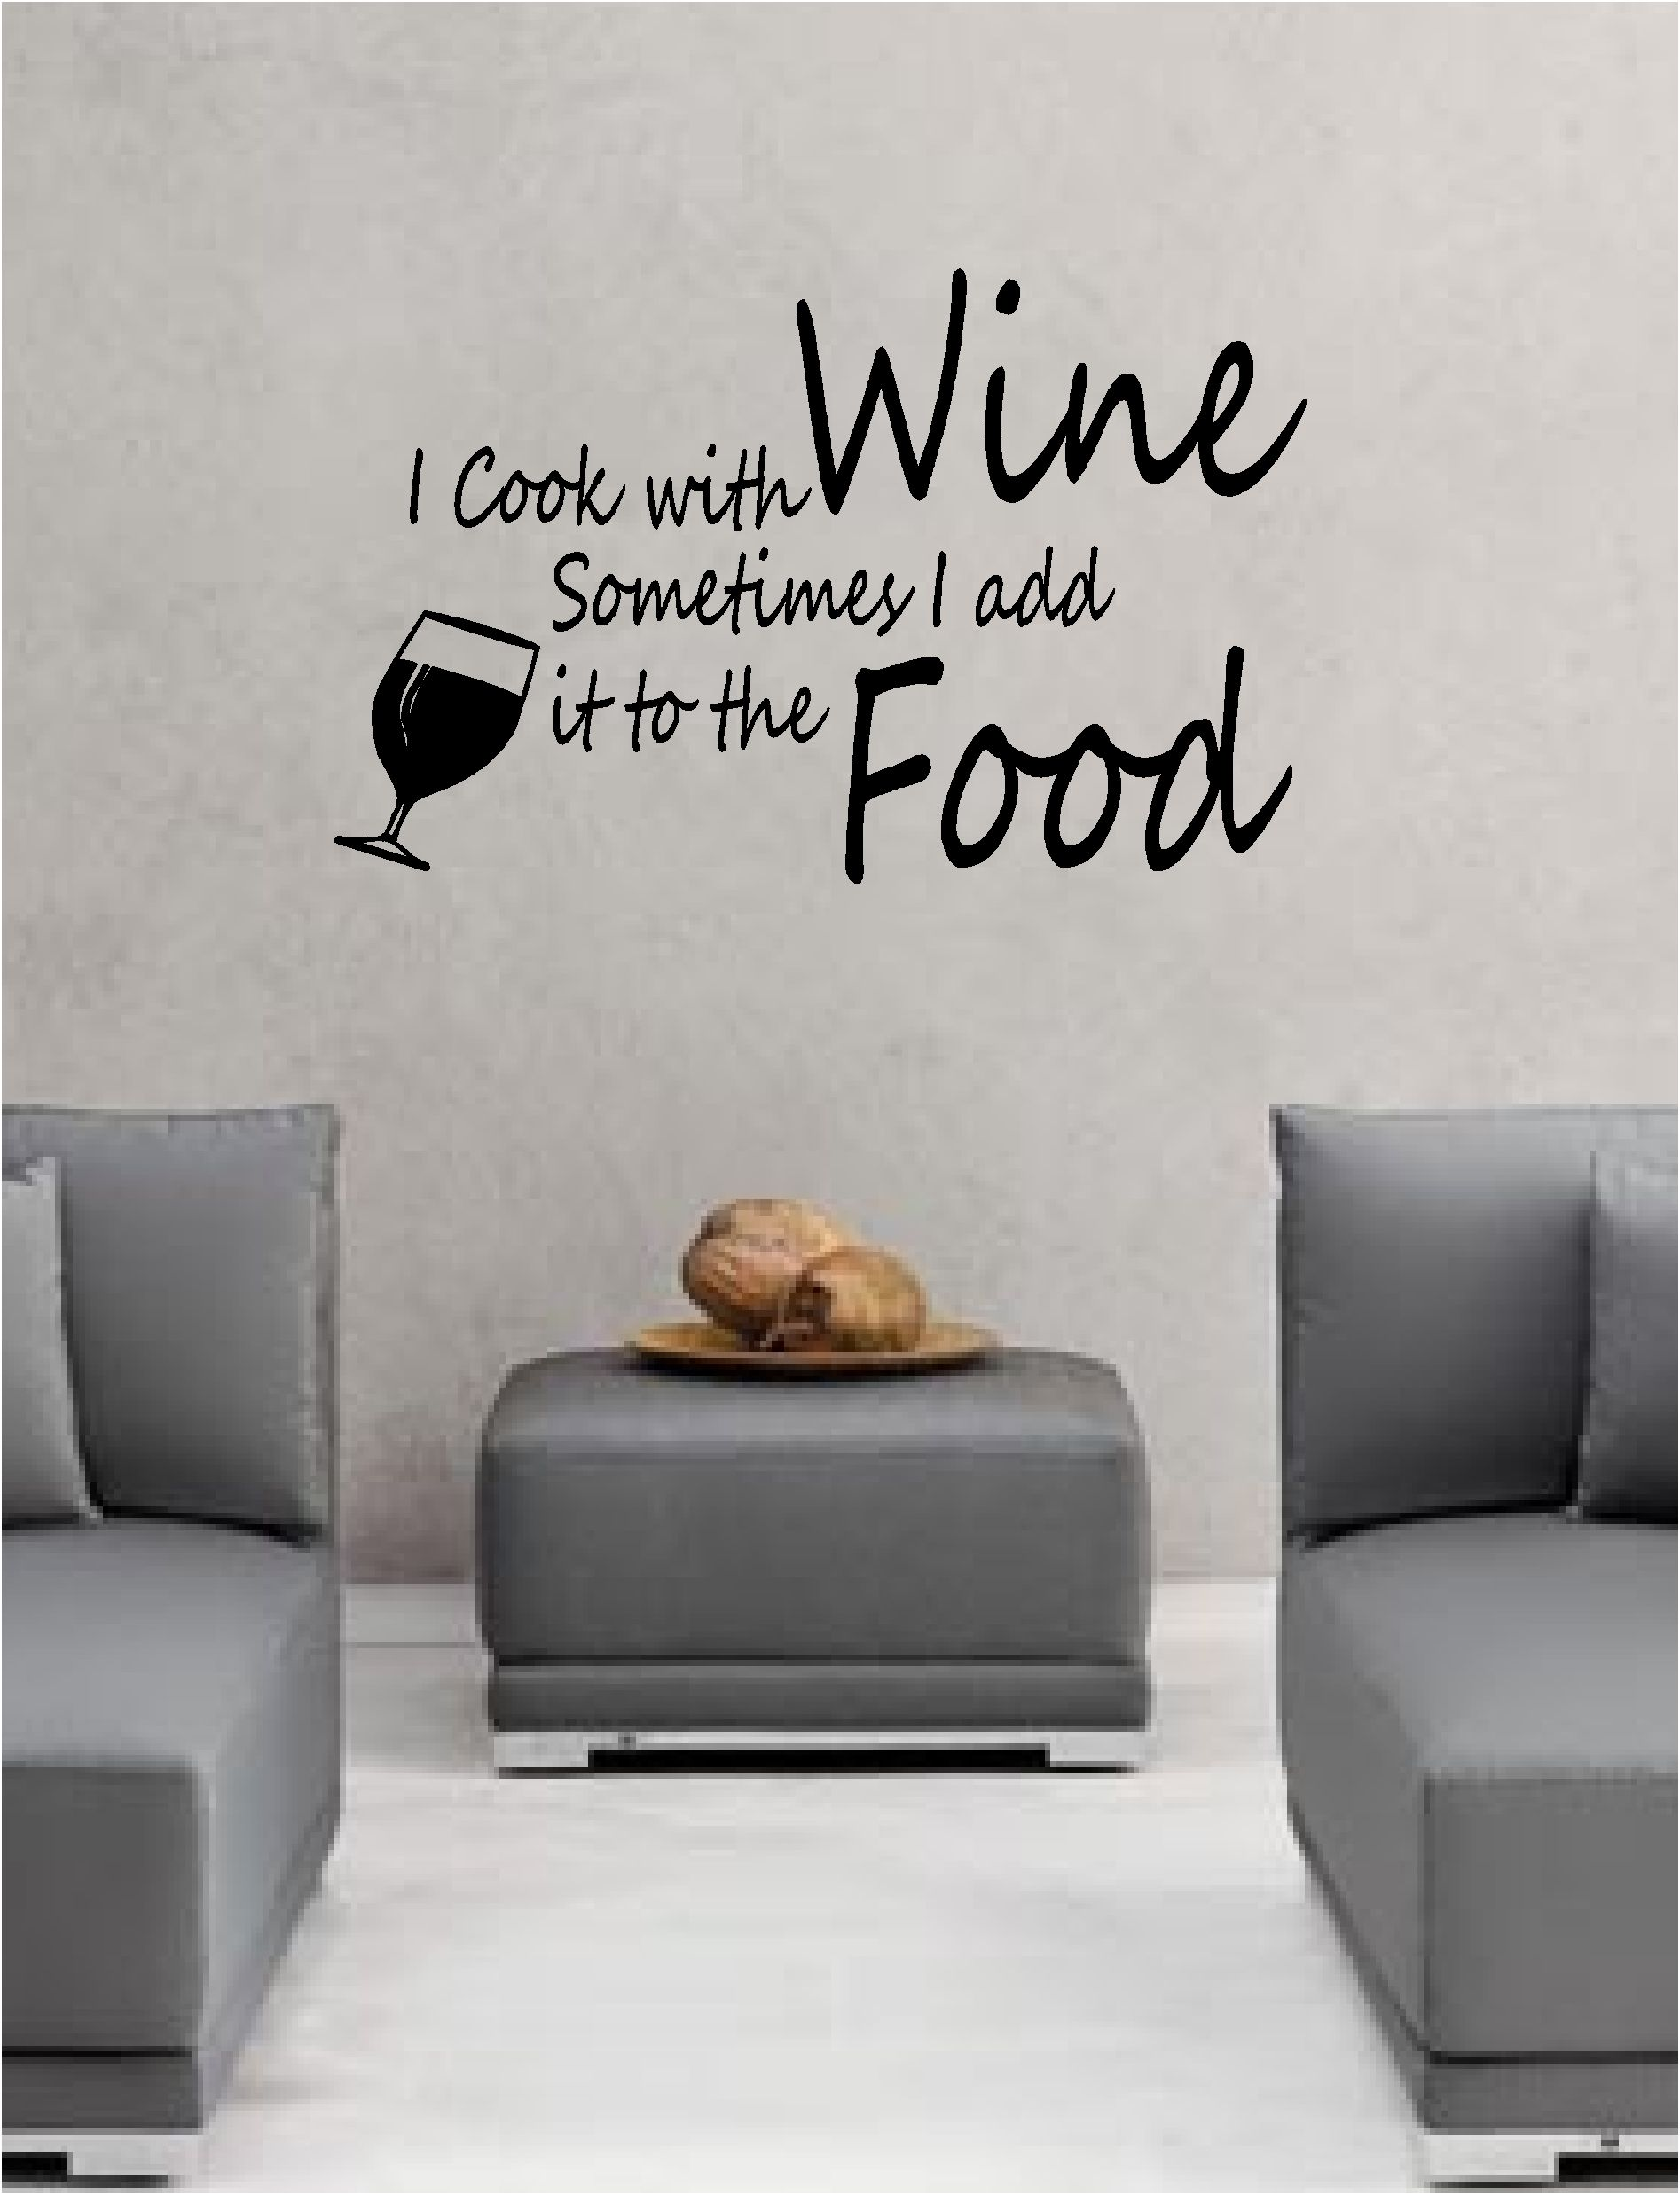 kitchen sayings | COOK WITH WINE"|1894|2473|?|en|2|85f6f4e3977f855bf0a542dd905c2594|False|UNLIKELY|0.31590789556503296